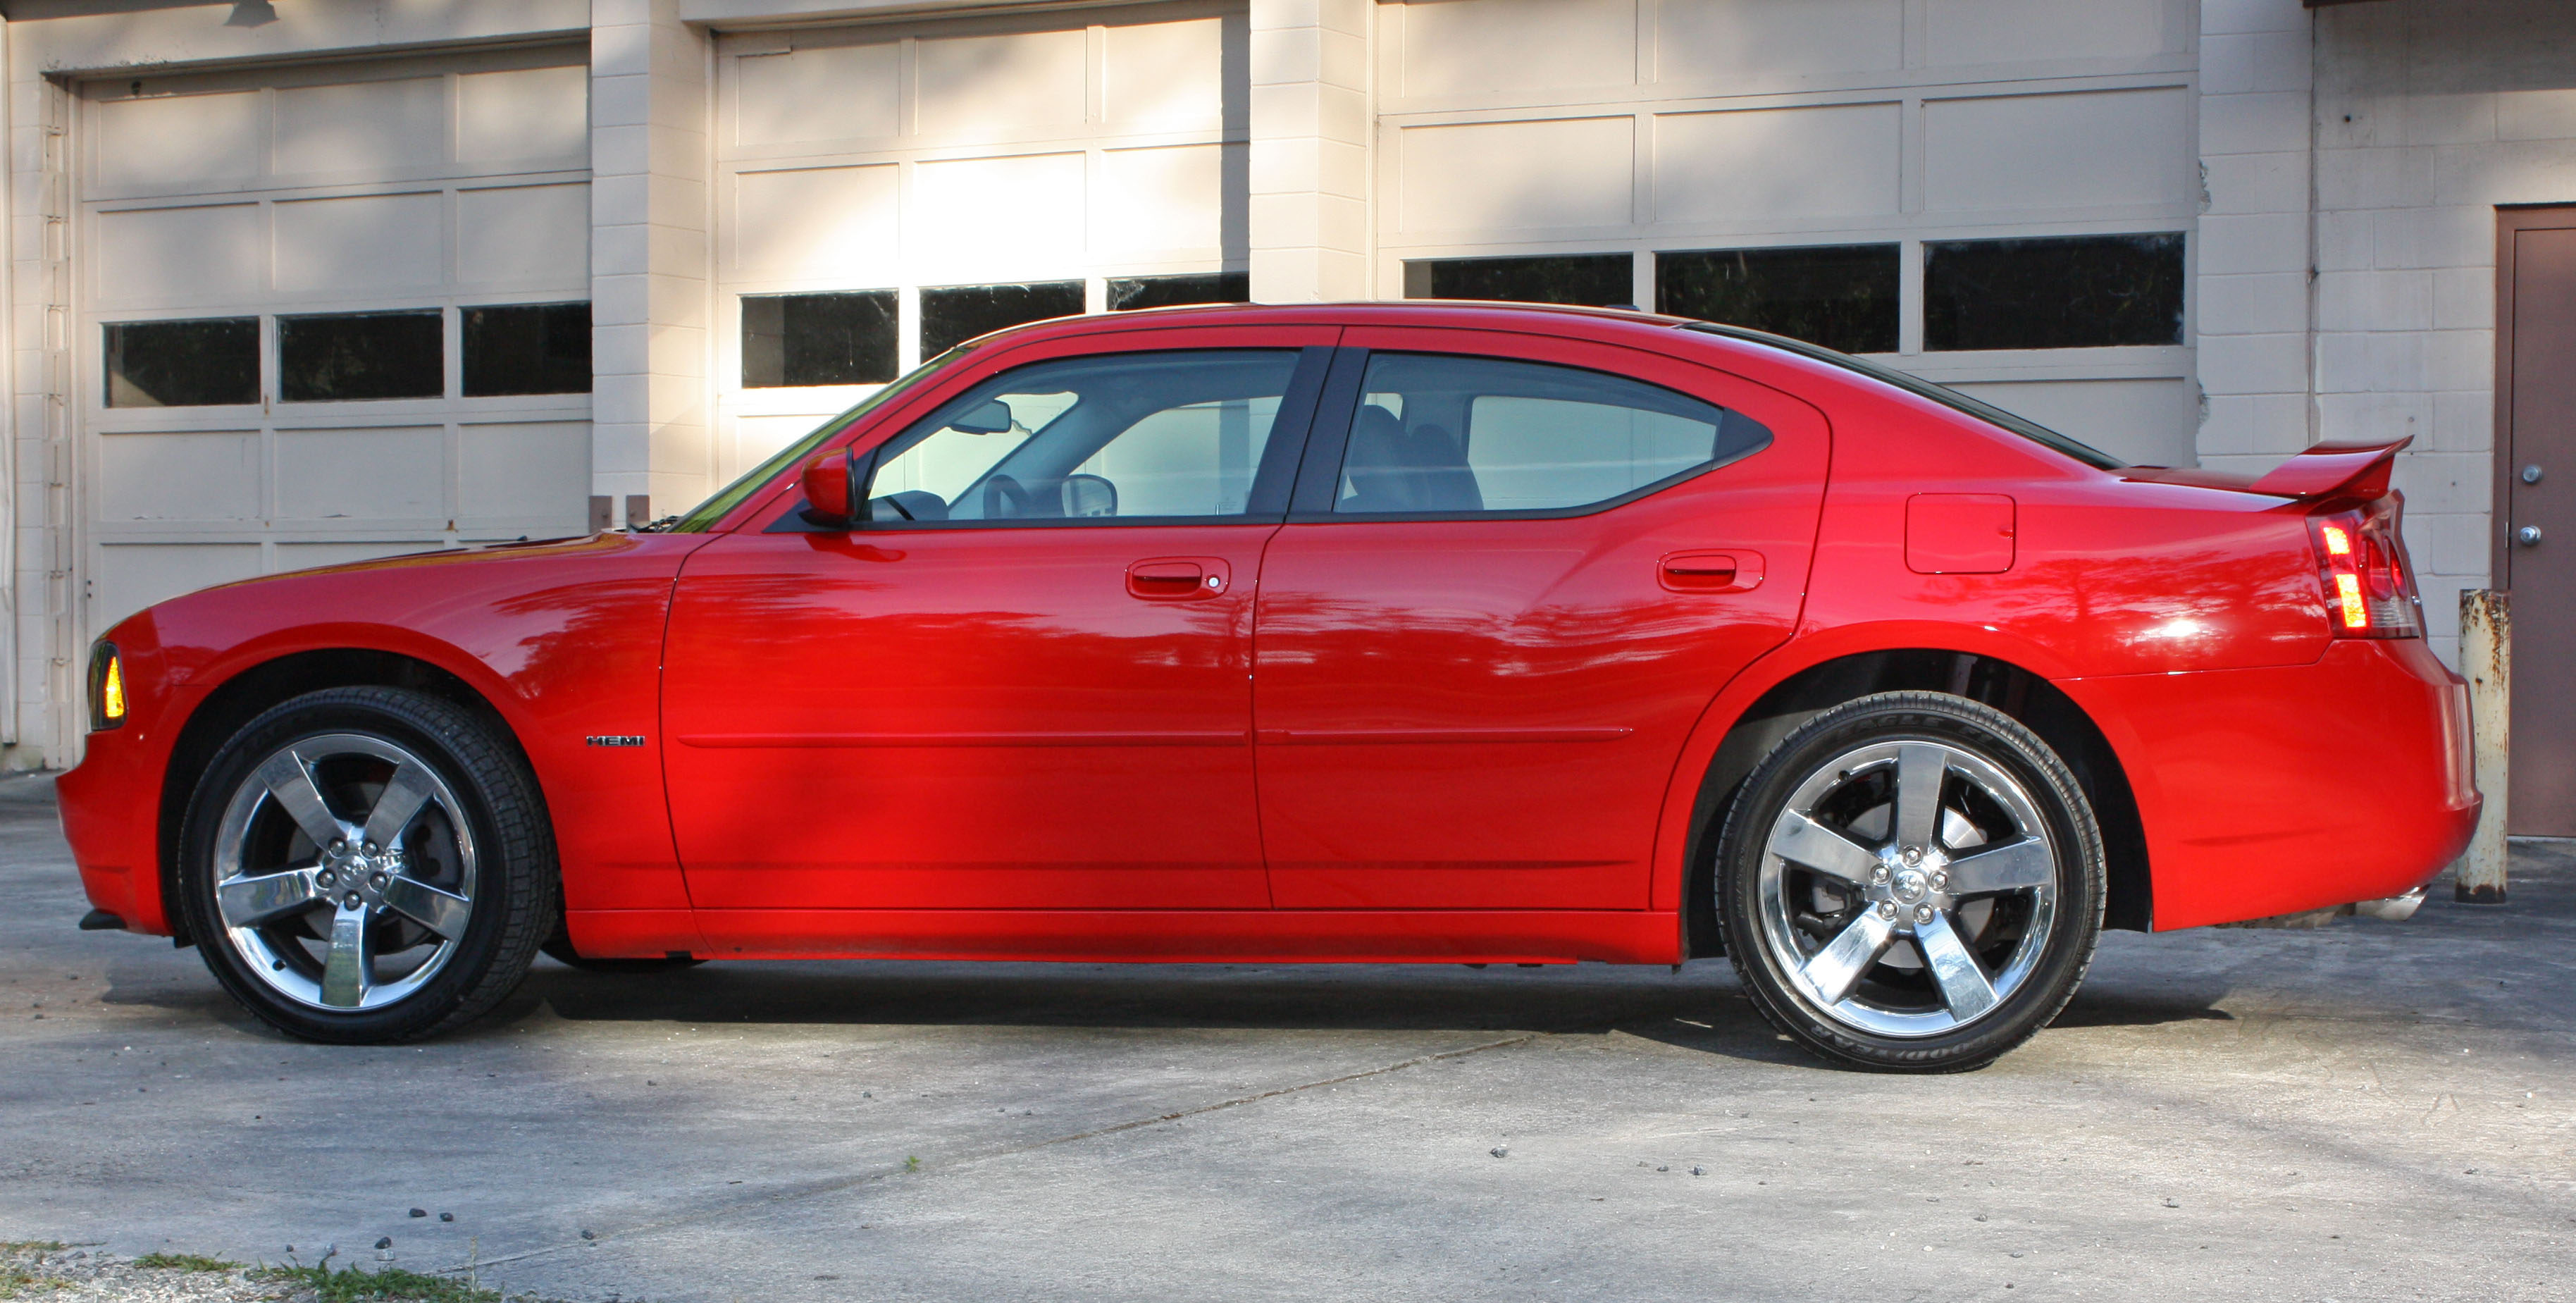 2010 Dodge Charger #6